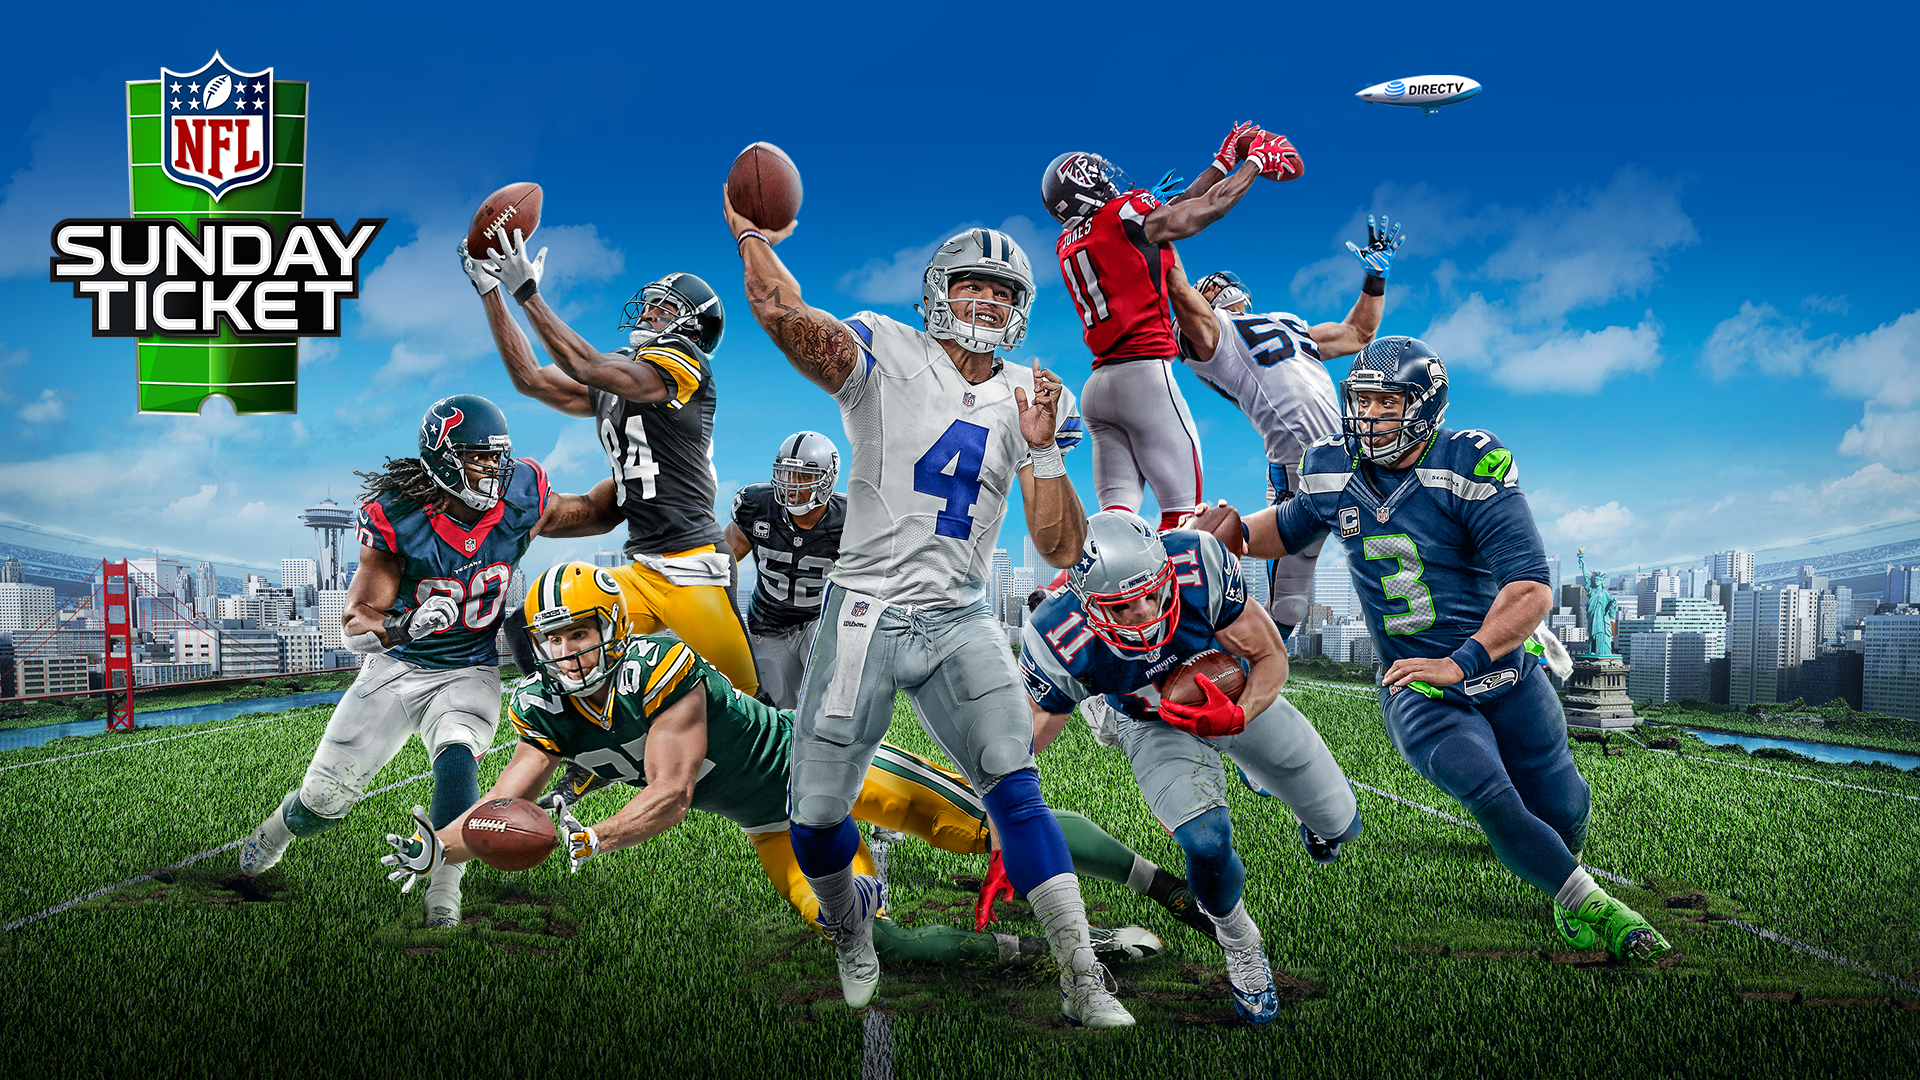 Cant get DIRECTV Stream NFL SUNDAY TICKET online without a DIRECTV satellite TV account Now available in more cities and on more devices